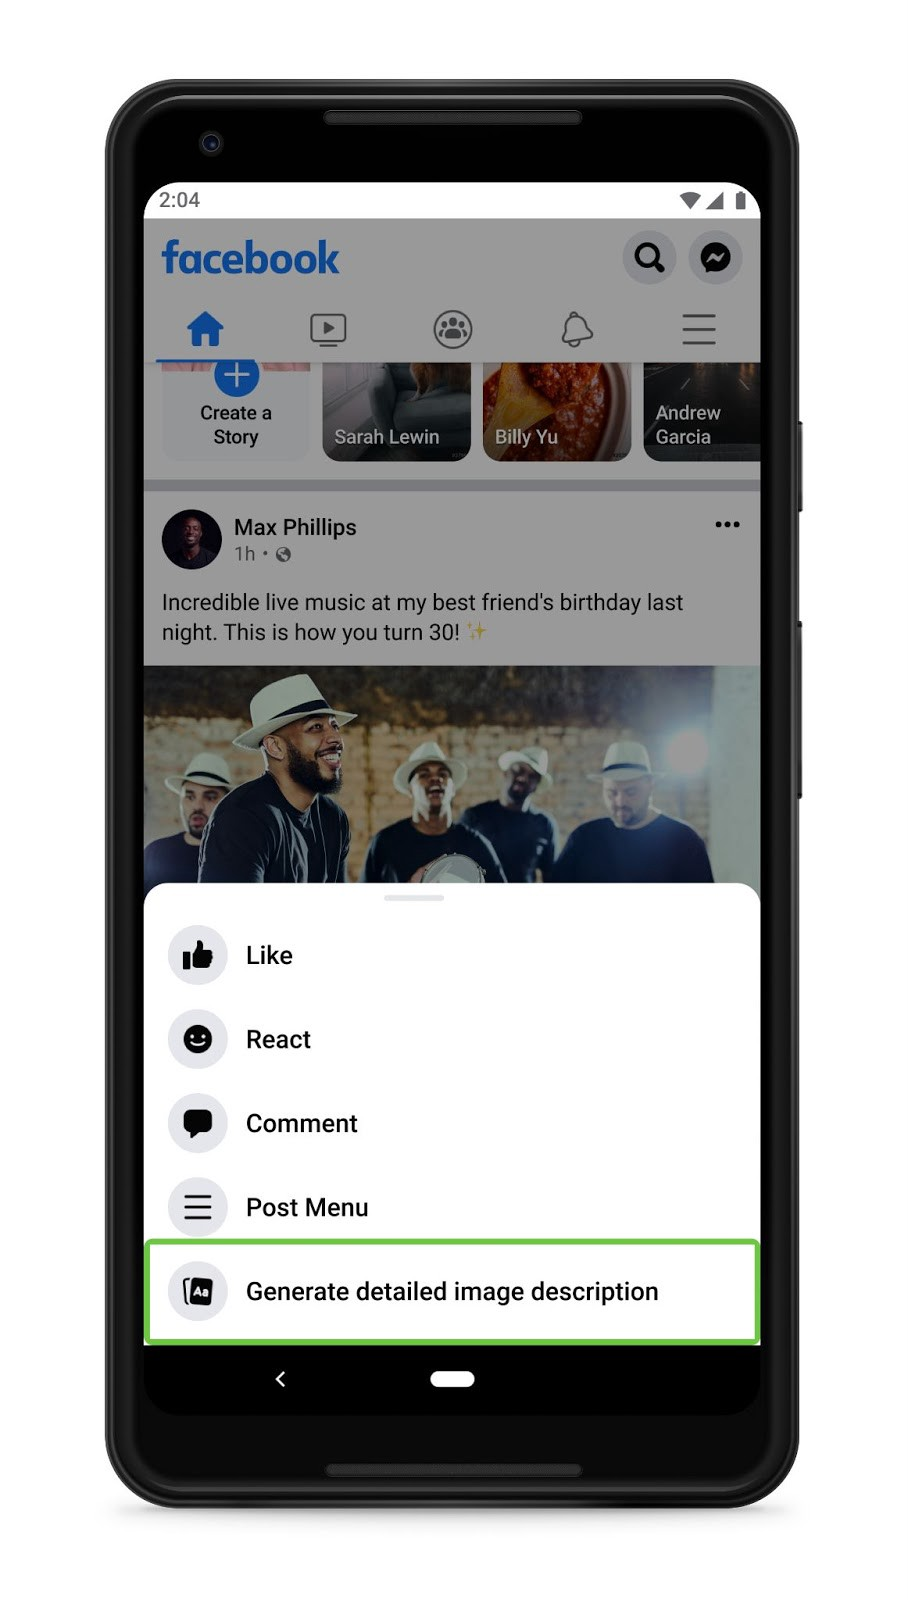 A cell phone screenshot of actions menu of a post, containing 5 items: like, react, comment, post menu, and generate detailed image description. The last item is highlighted by the screen reader cursor.